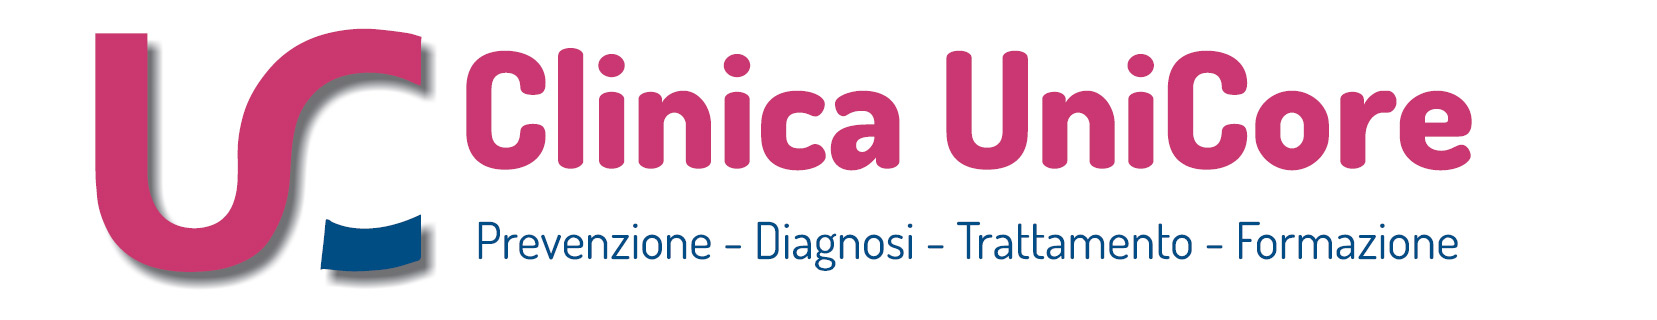 Clinica Unicore